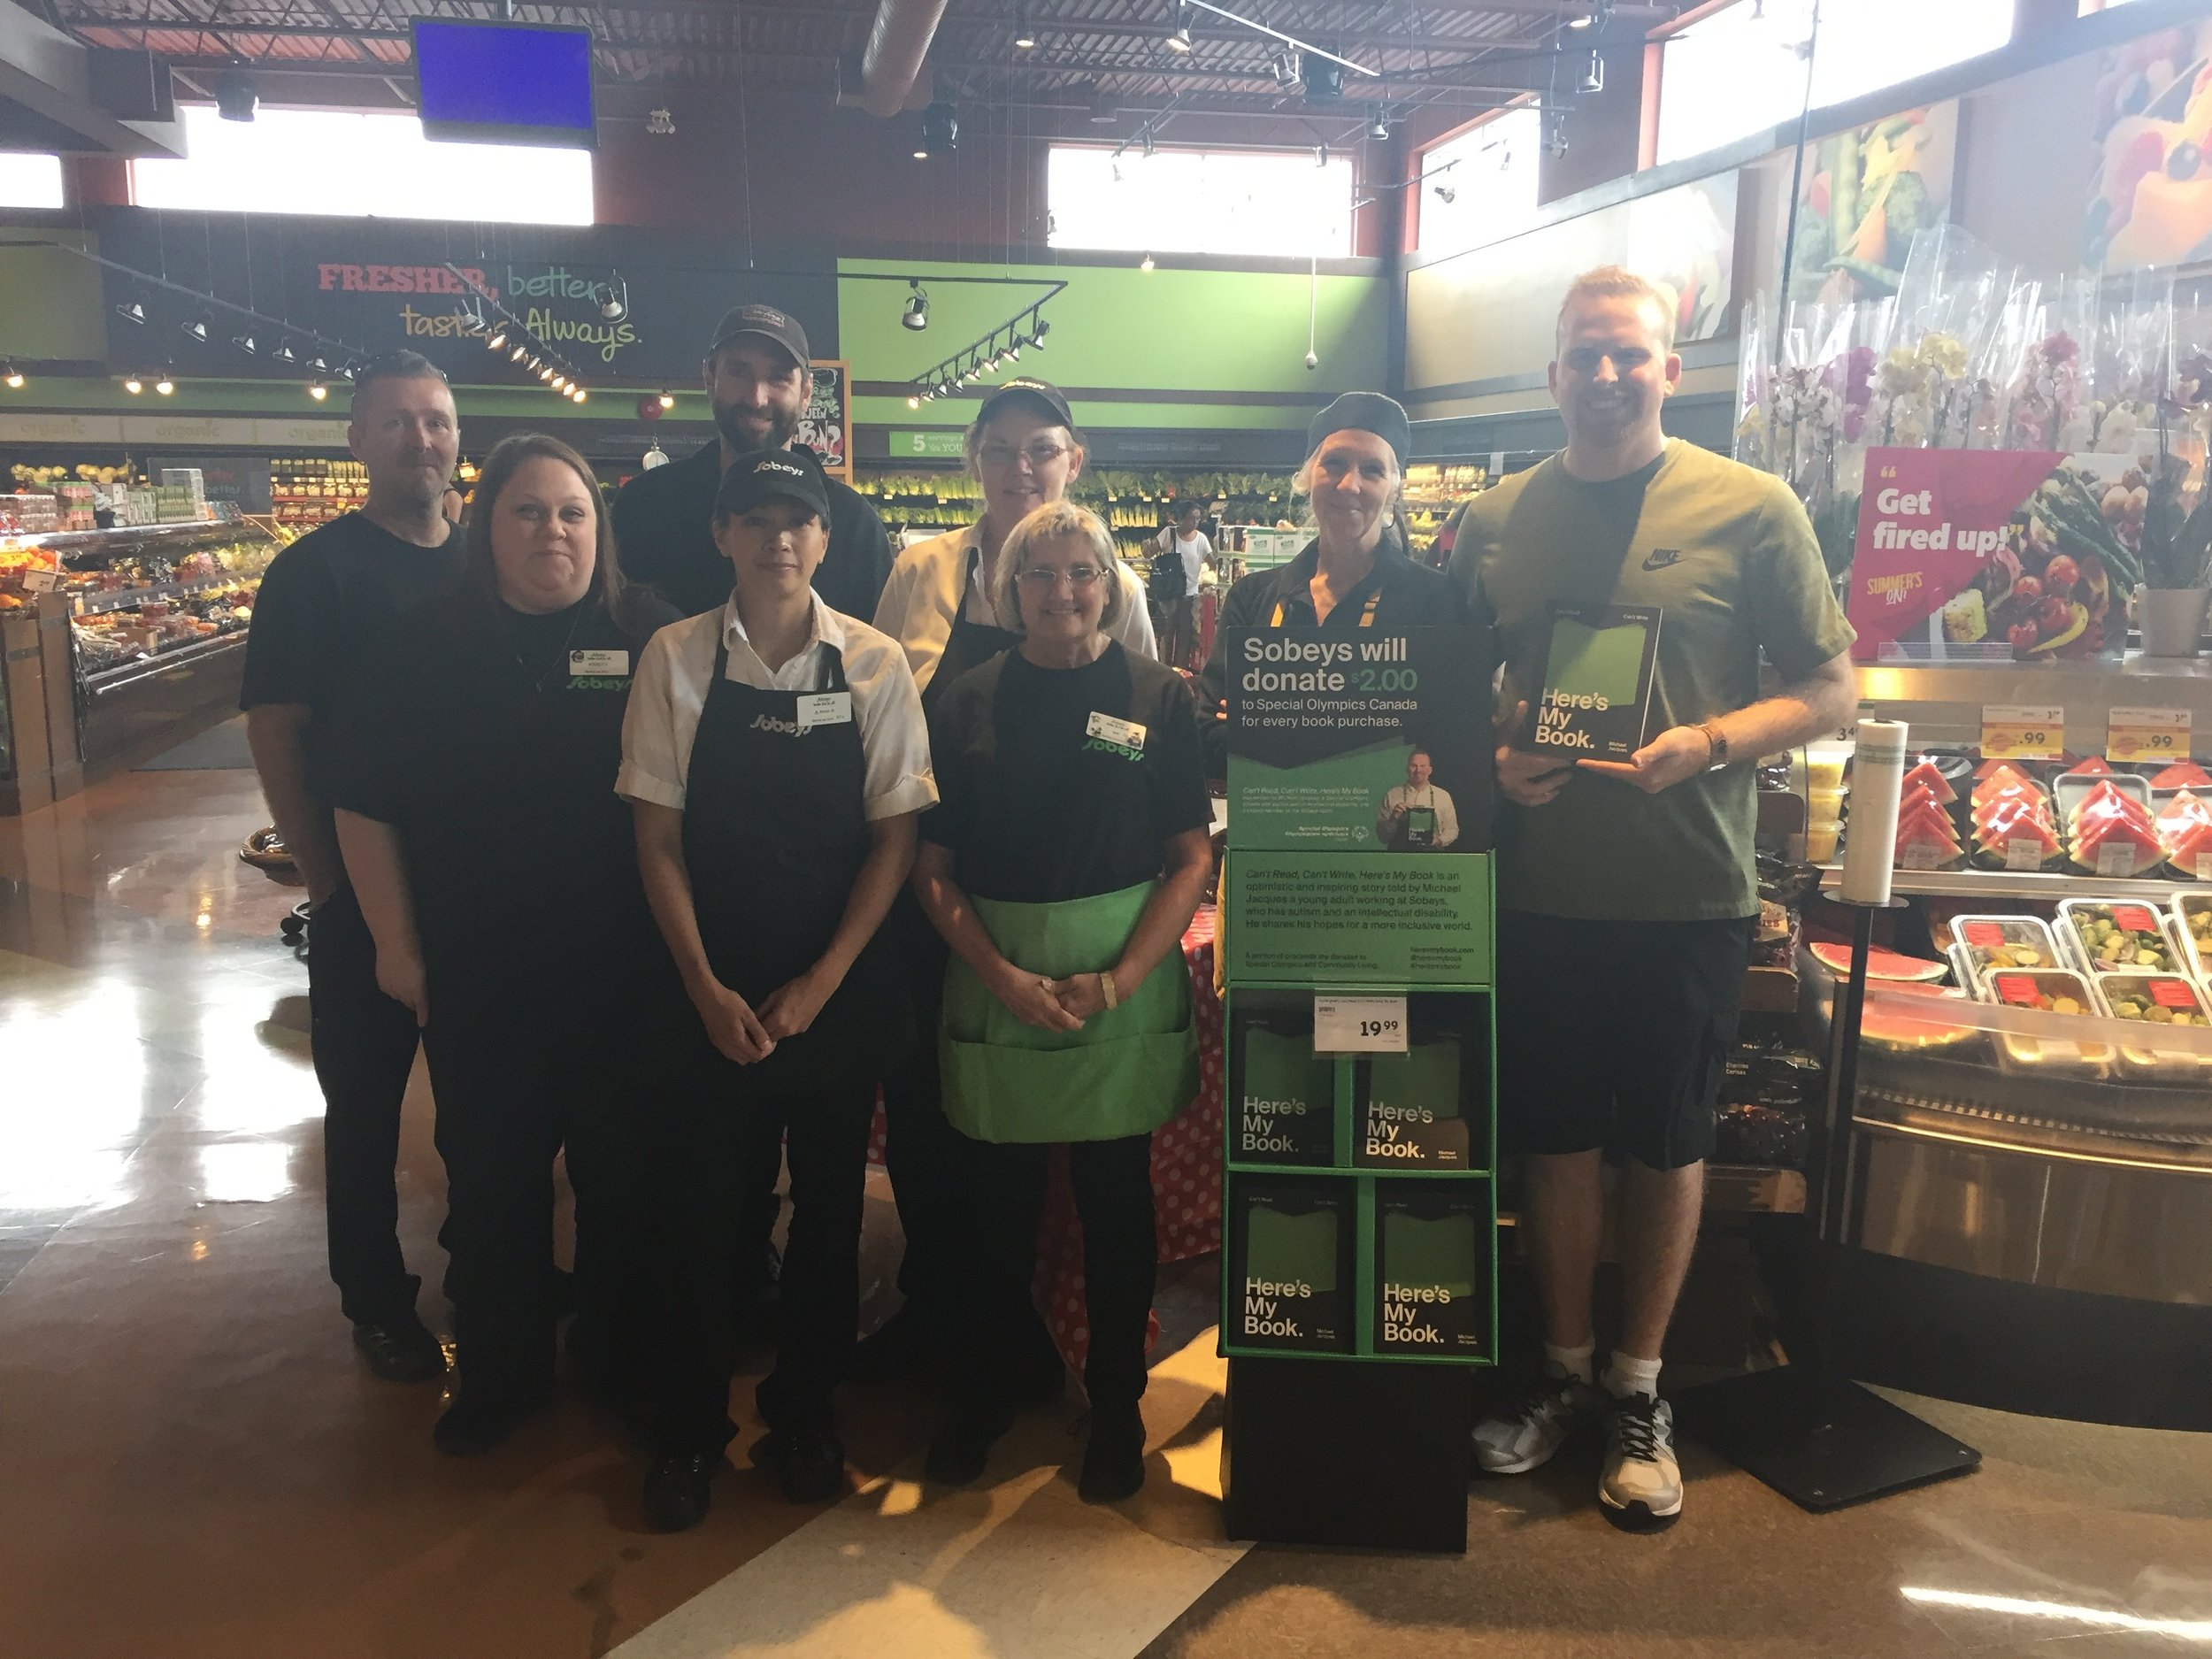 Day 5 – I added a couple extra stores close to home. Meet the Sobeys team at Scott & Niagara street in St. Catharines.